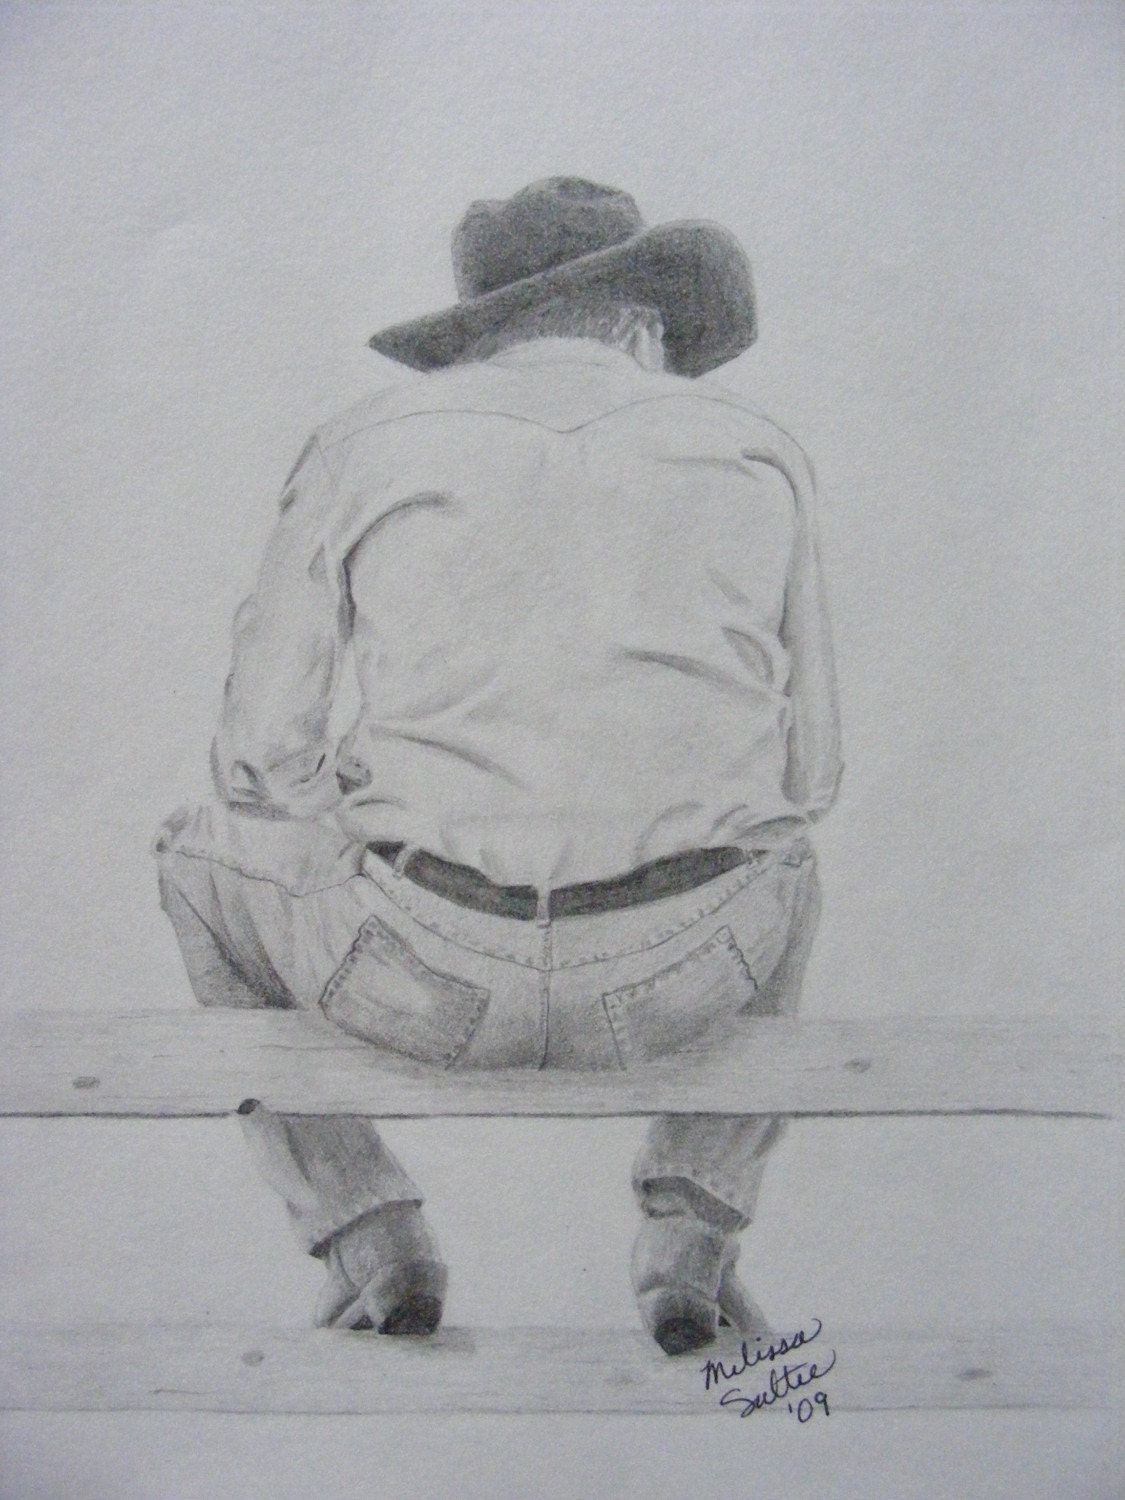 Cowboy sketch drawings - photo#22